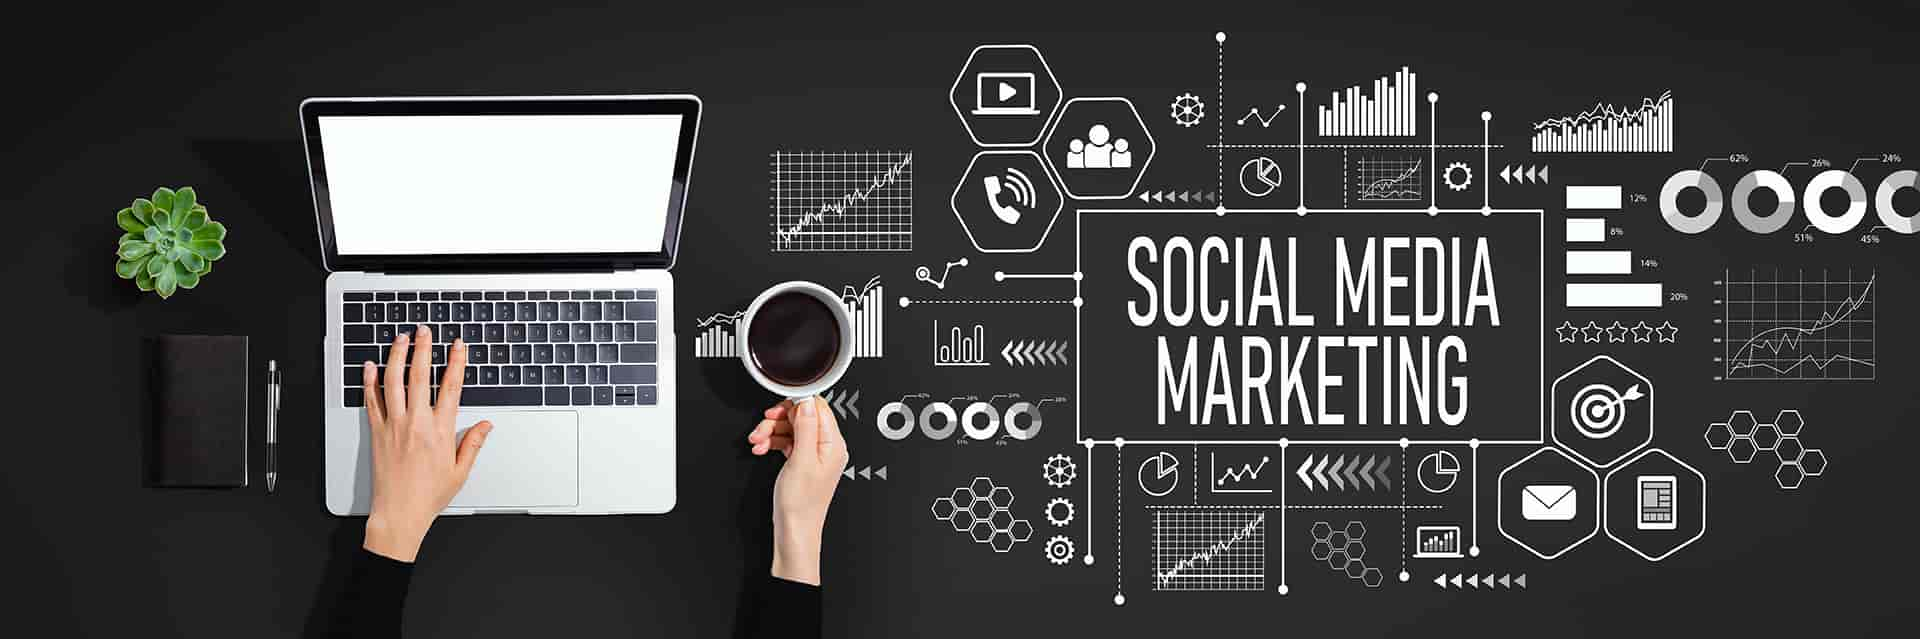 Marketing en Redes Sociales en Murcia y Estrategias de Social Media